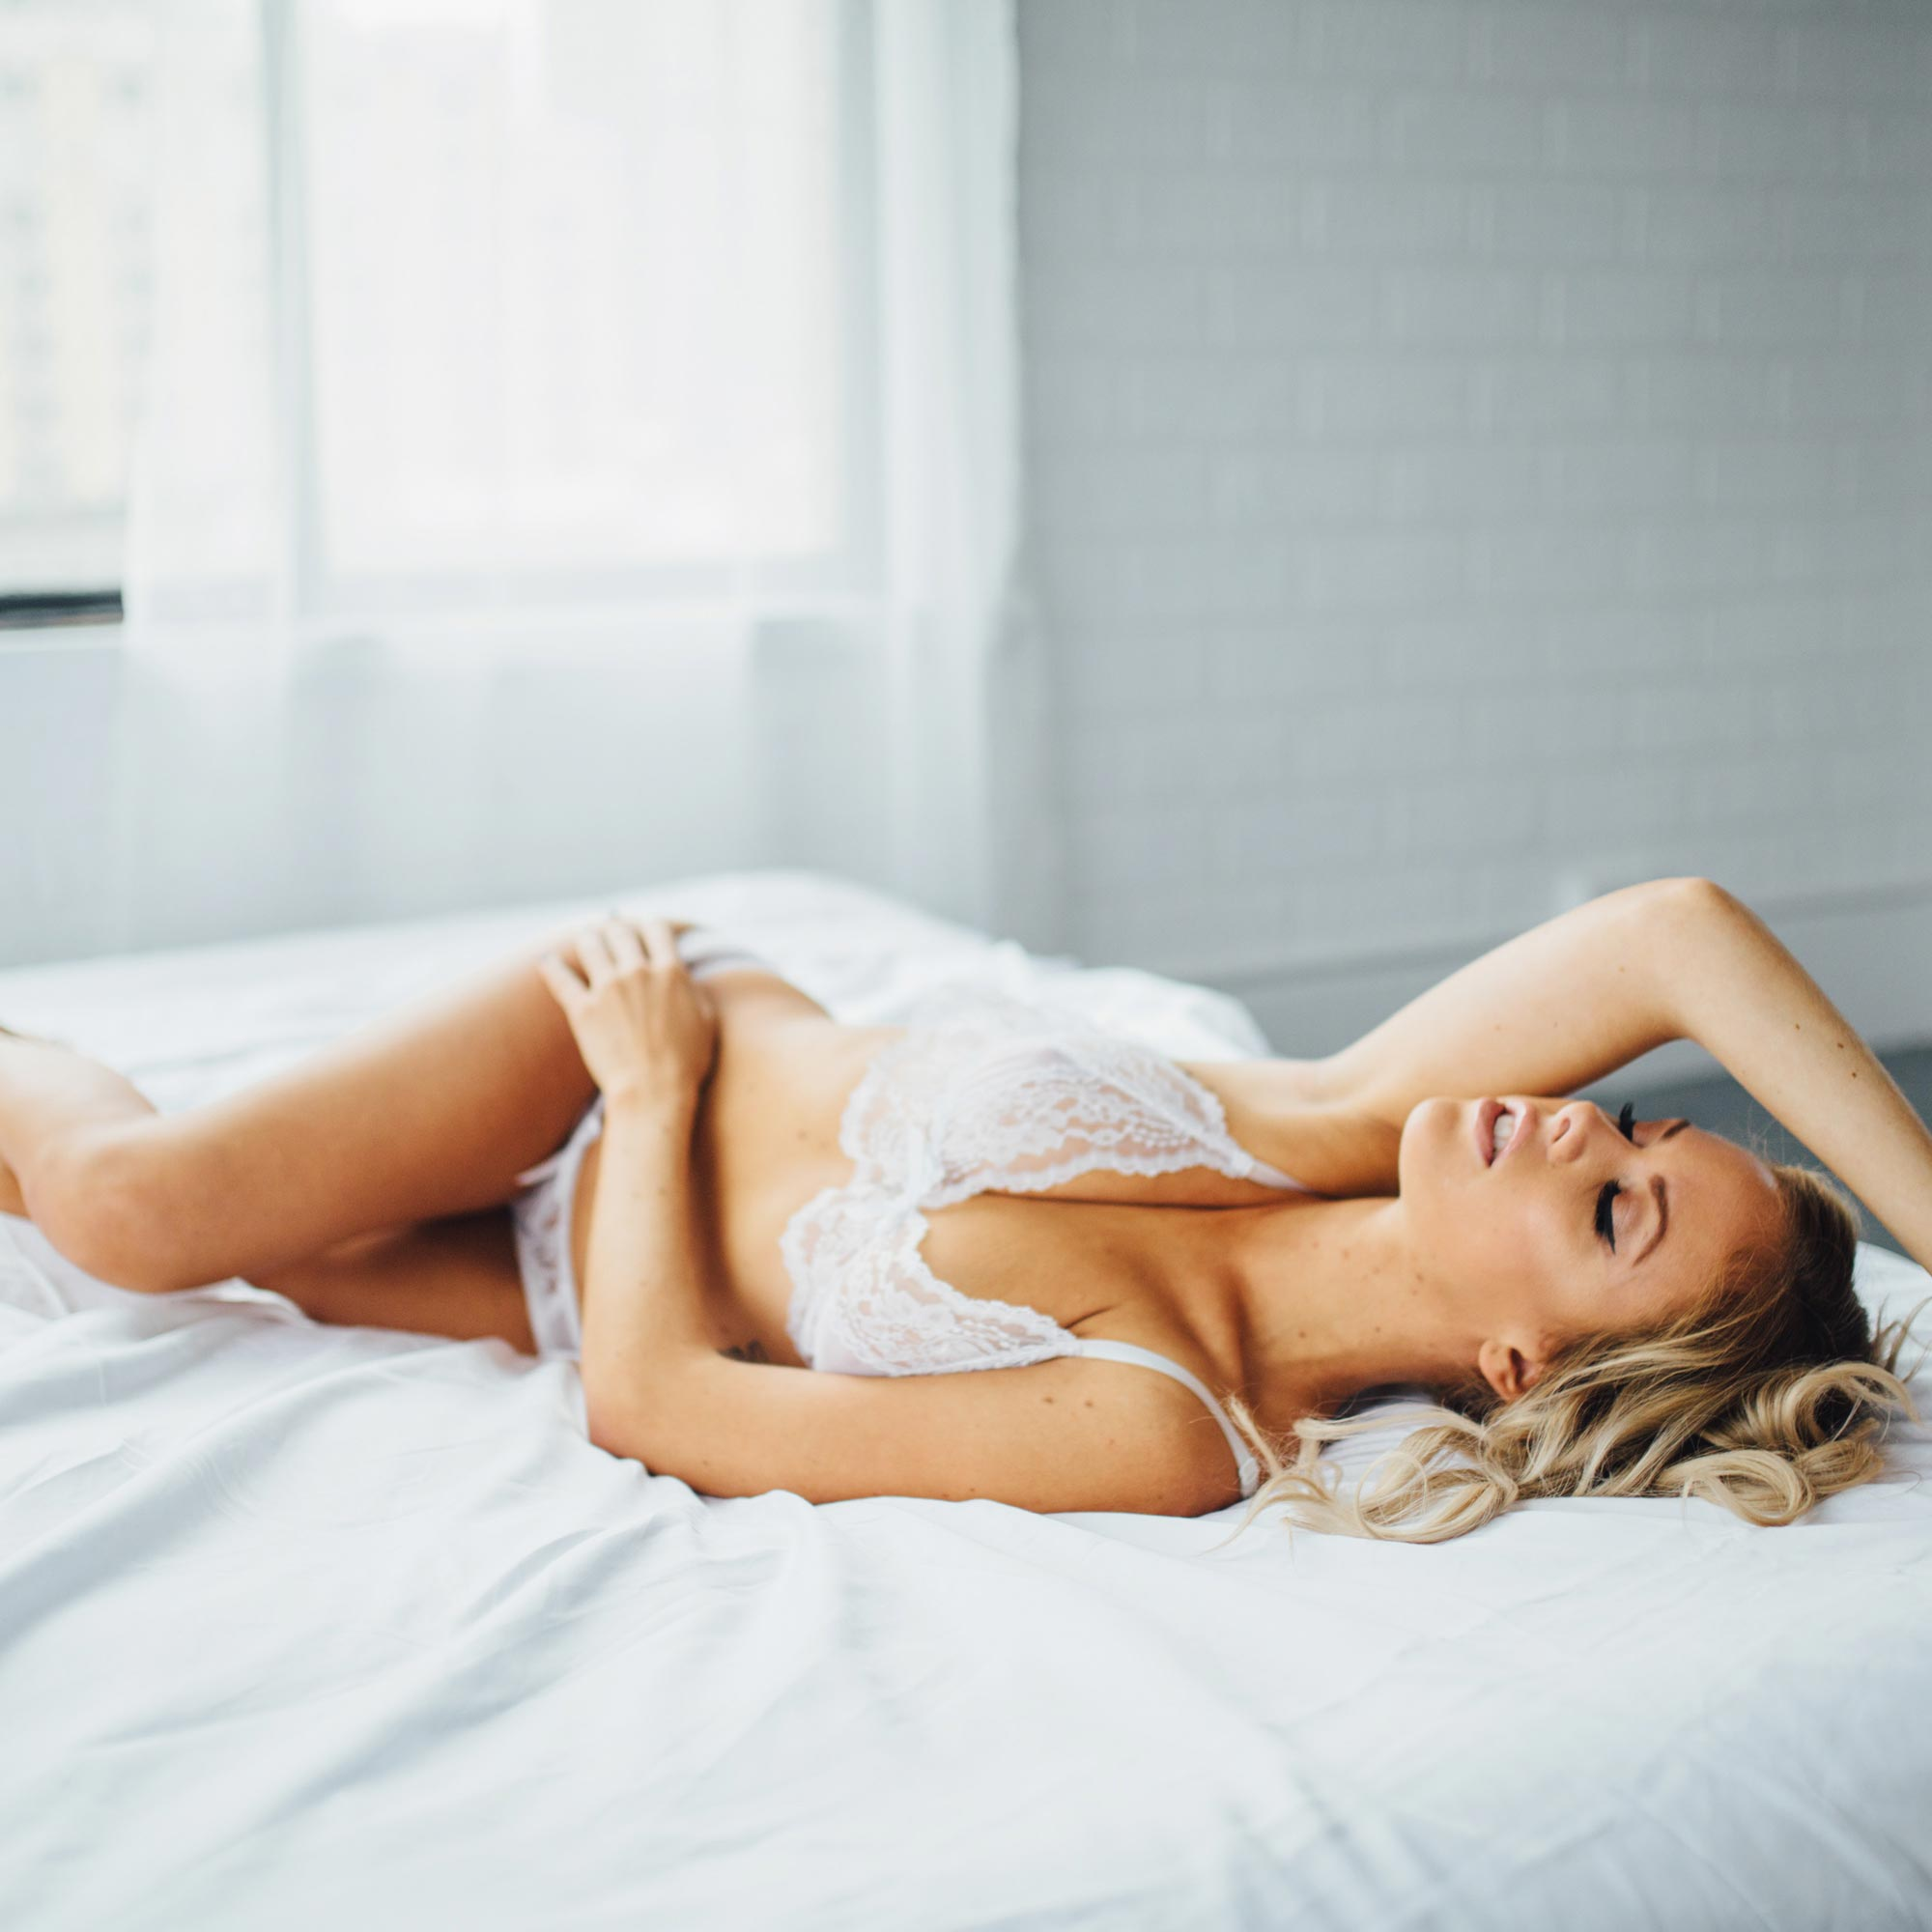 Inquire About Boudoir Photoshoots